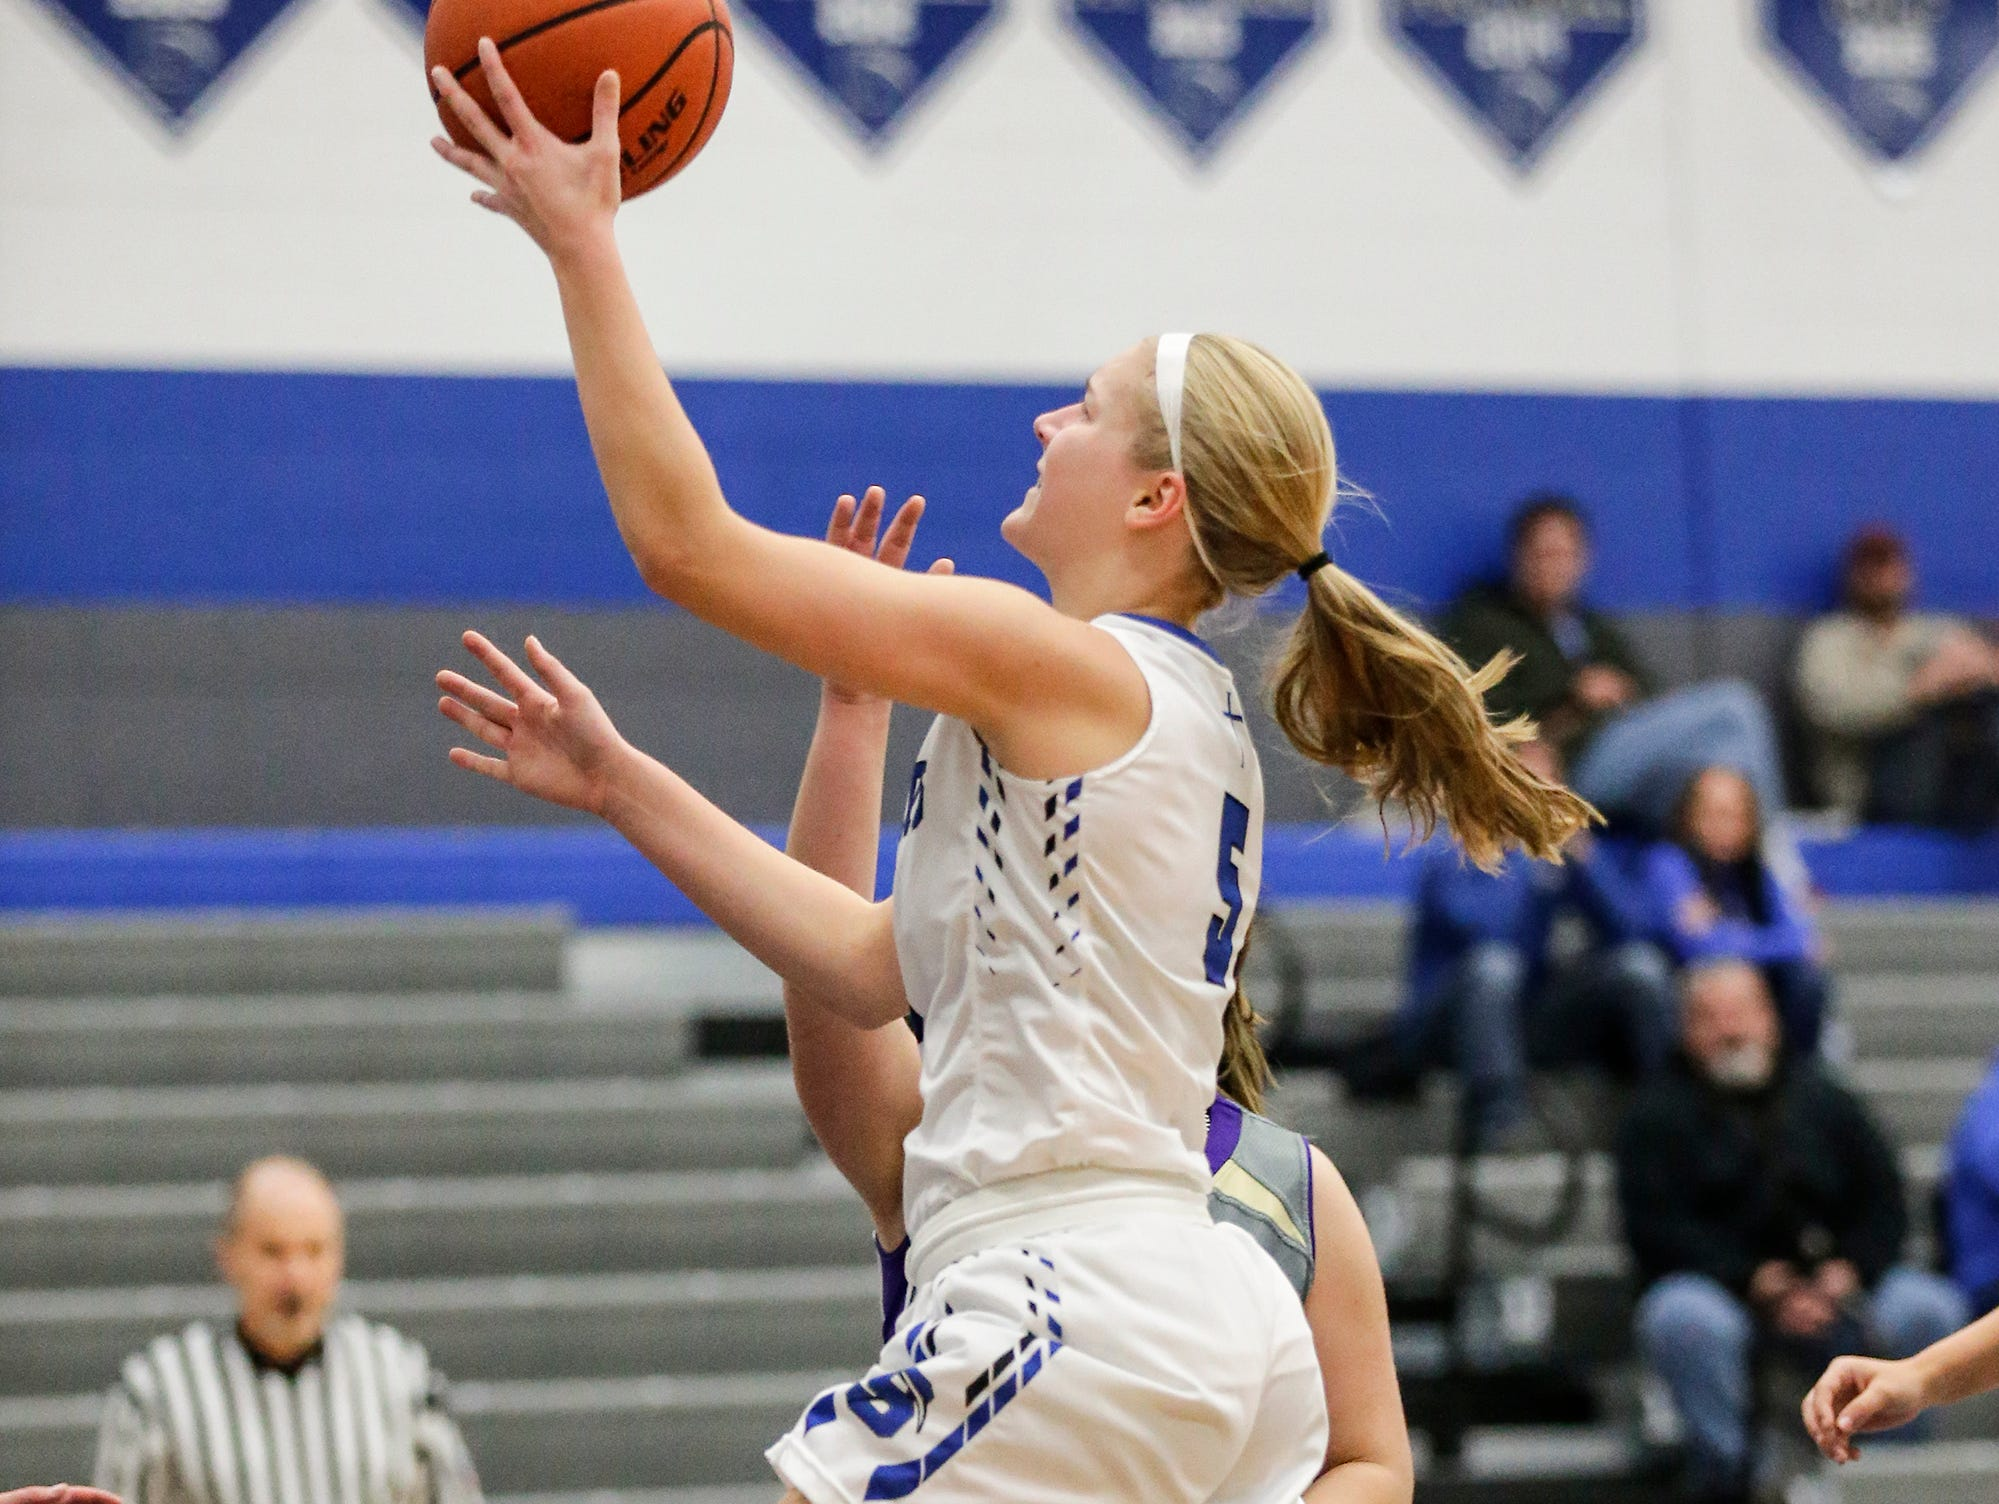 St. Mary's Springs girls basketball's Gracie Rieder goes up for a basket against Two Rivers High School during their game Friday, November 16, 2018 in Fond du Lac. Doug Raflik/USA TODAY NETWORK-Wisconsin